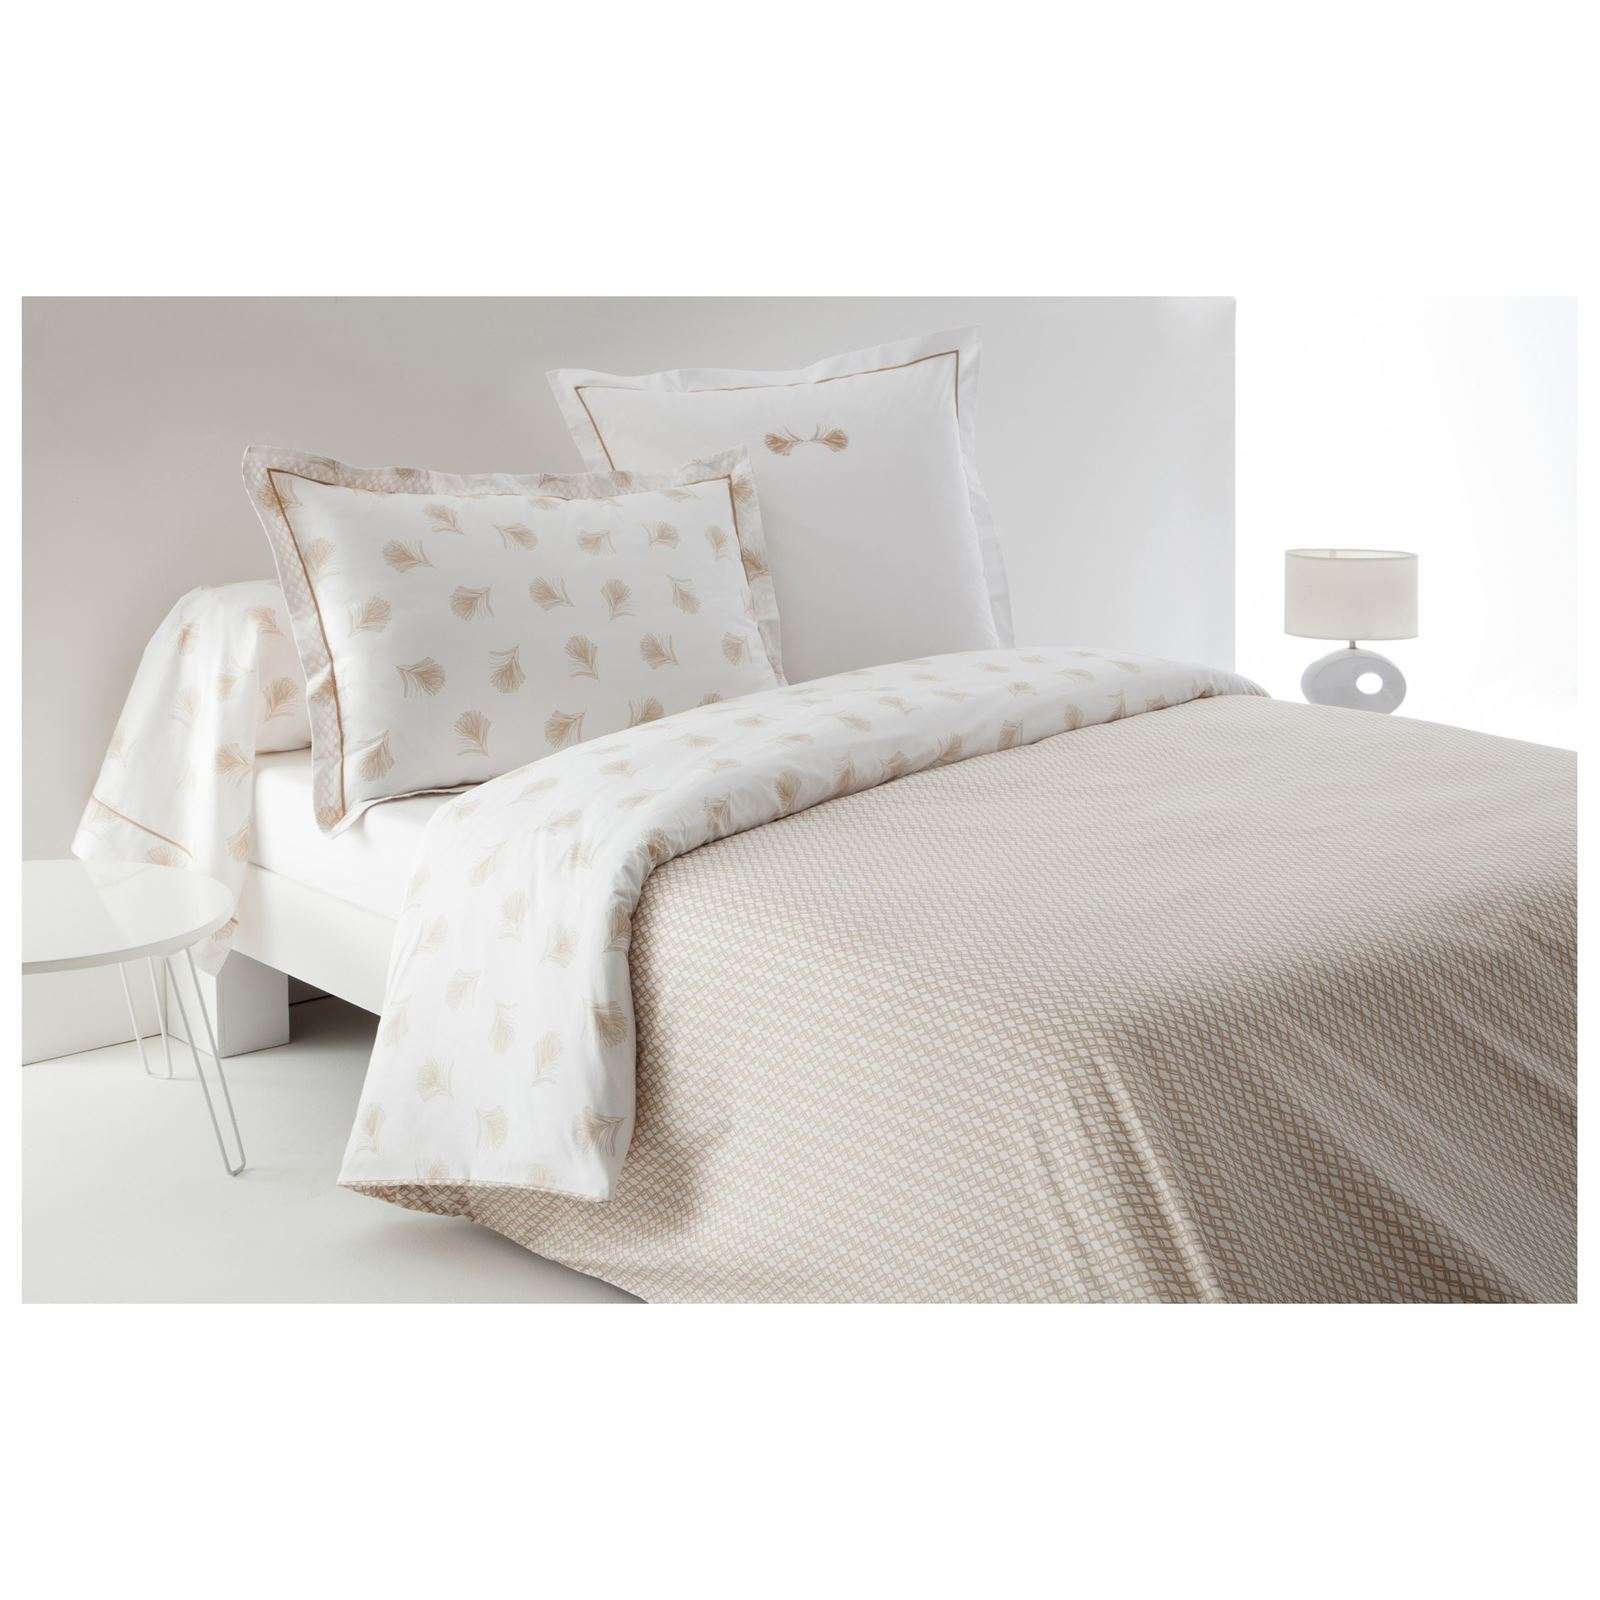 anne de sol ne plume housse de couette percale 80 fils cm blanc brandalley. Black Bedroom Furniture Sets. Home Design Ideas